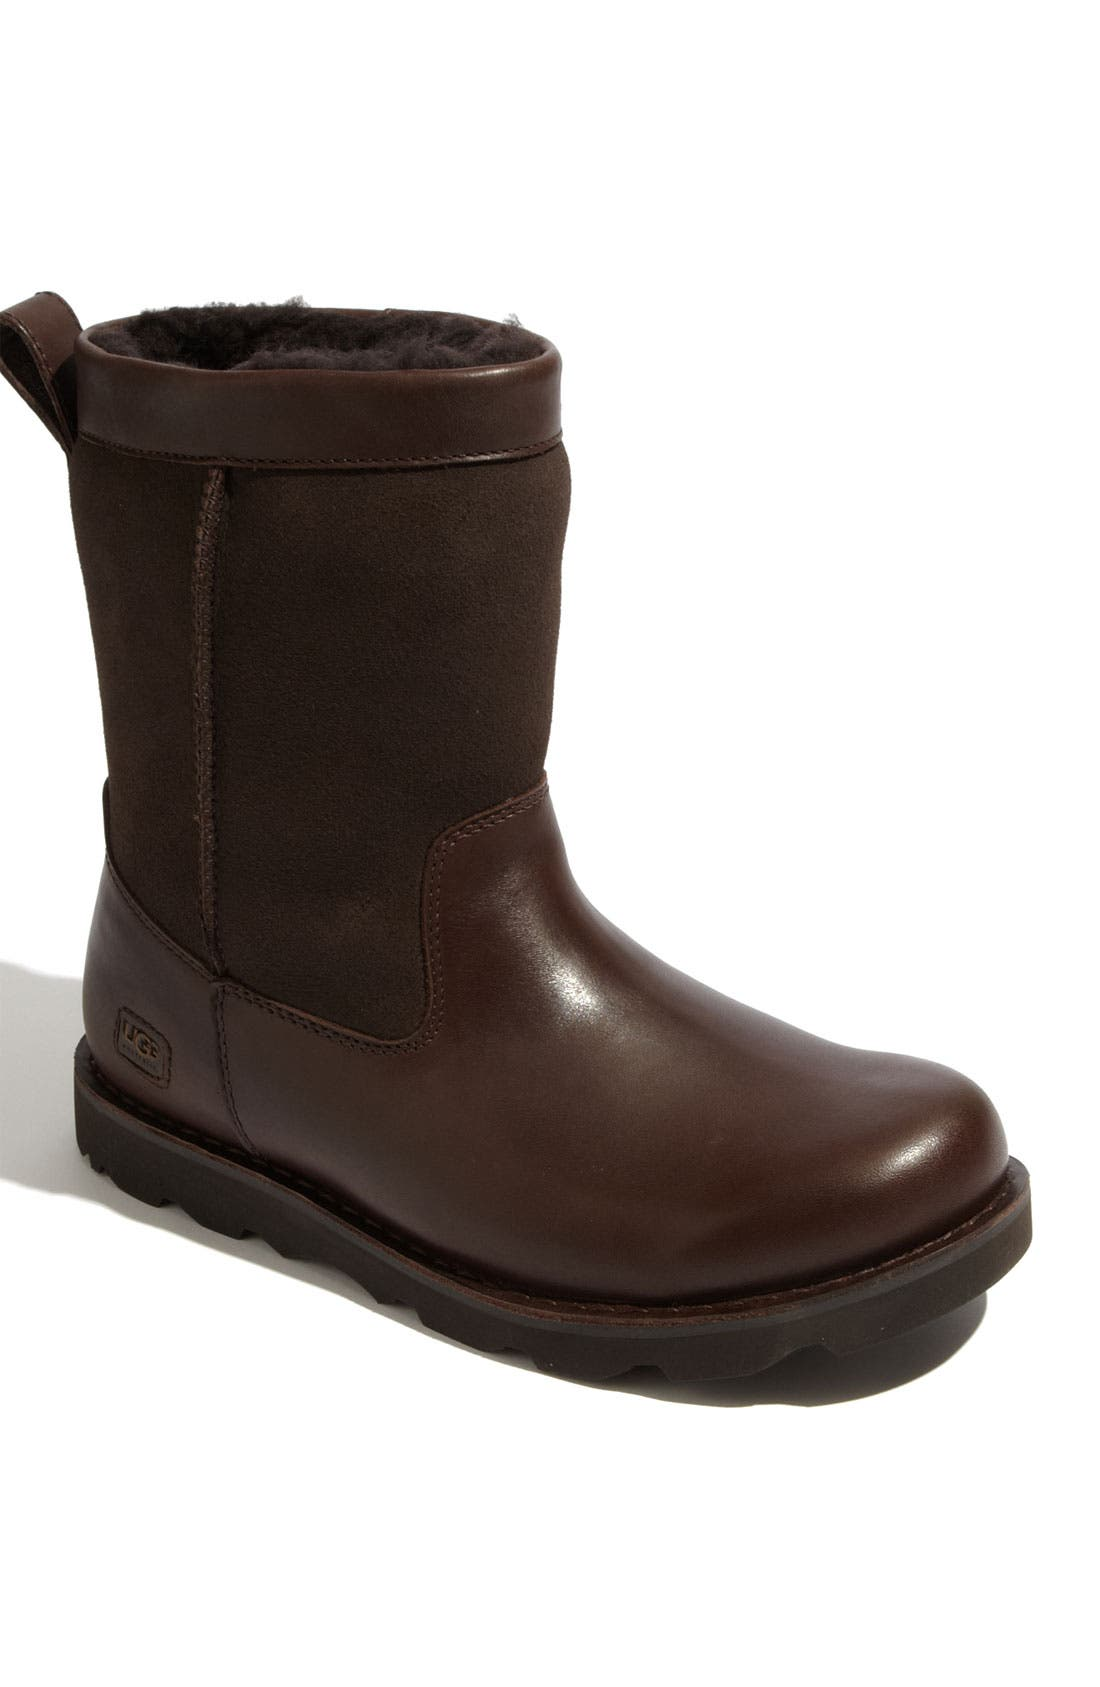 Alternate Image 1 Selected - UGG® 'Wrangell' Boot (Men)